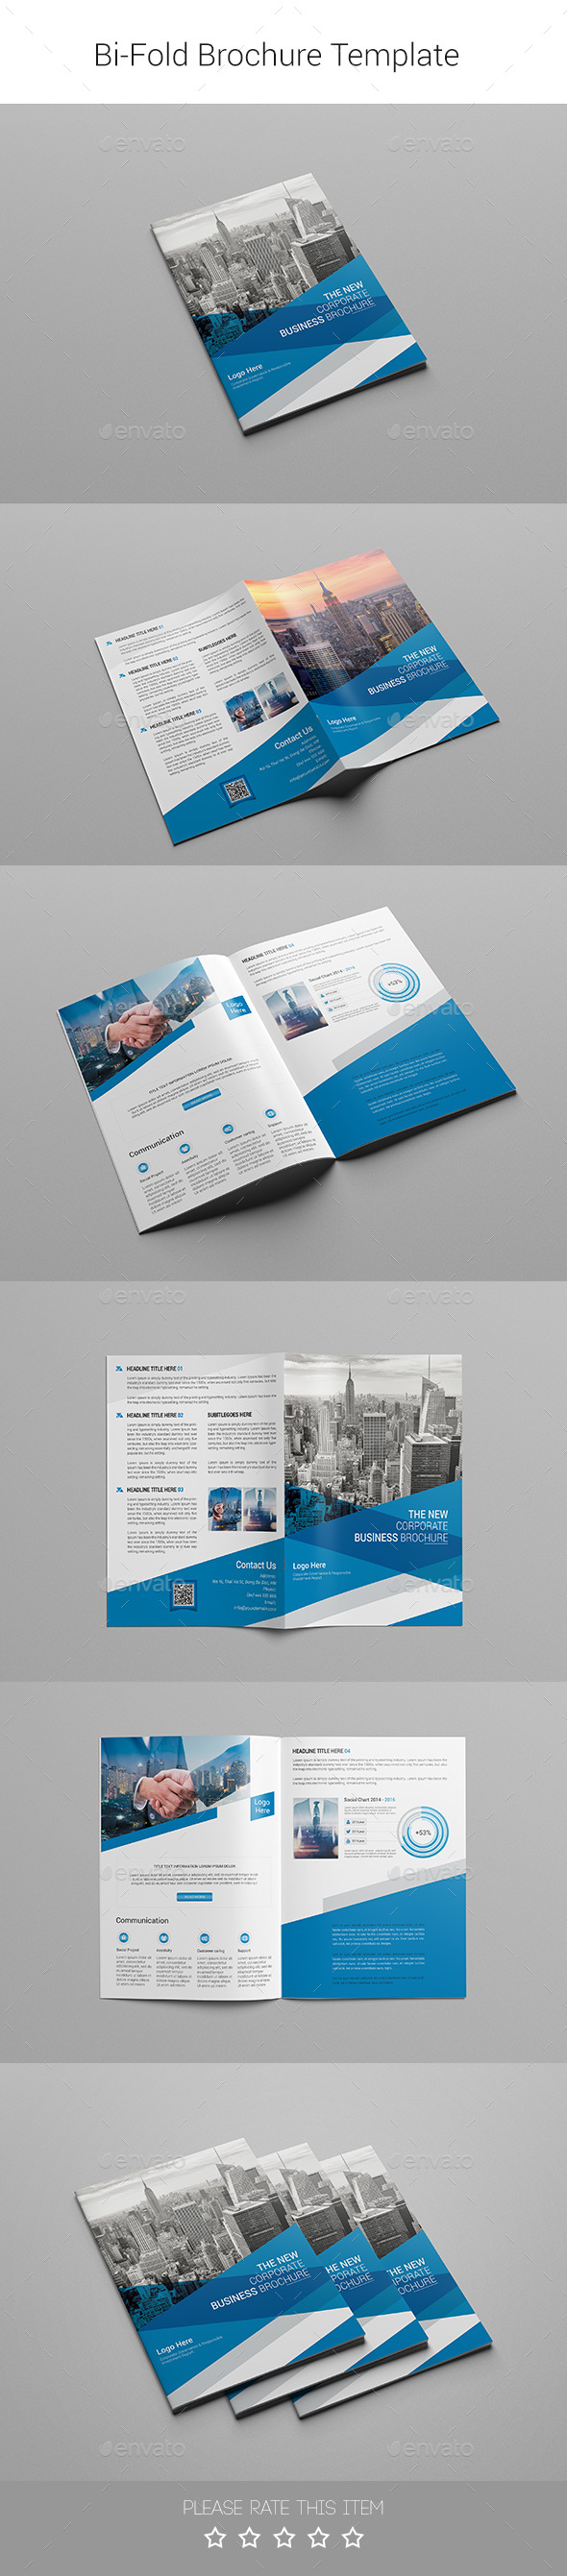 Corporate Bi-fold Brochure-Multipurpose 05 - Corporate Brochures